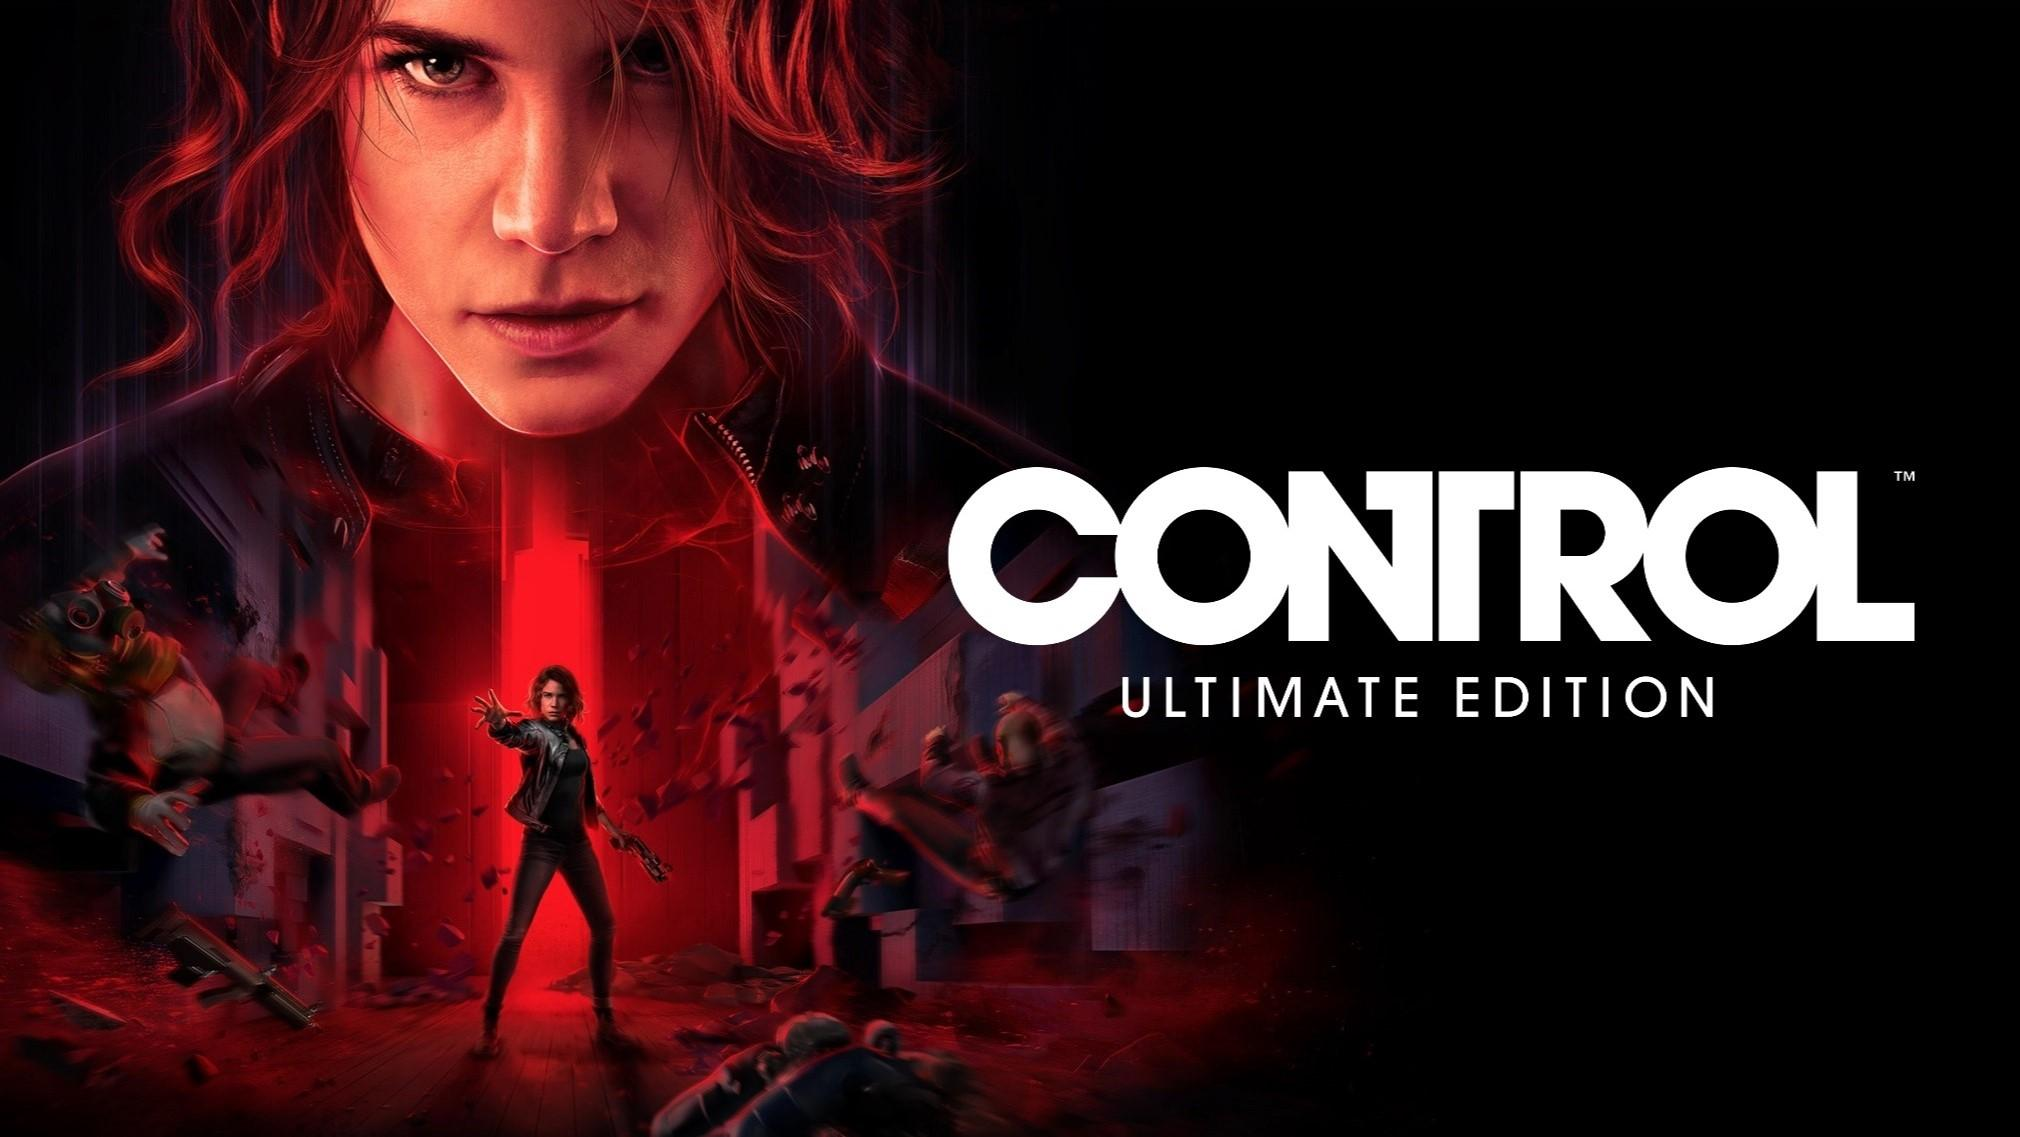 Control Ultimate Edition Announced For PS4 & PS5 - Playstation 4 ...